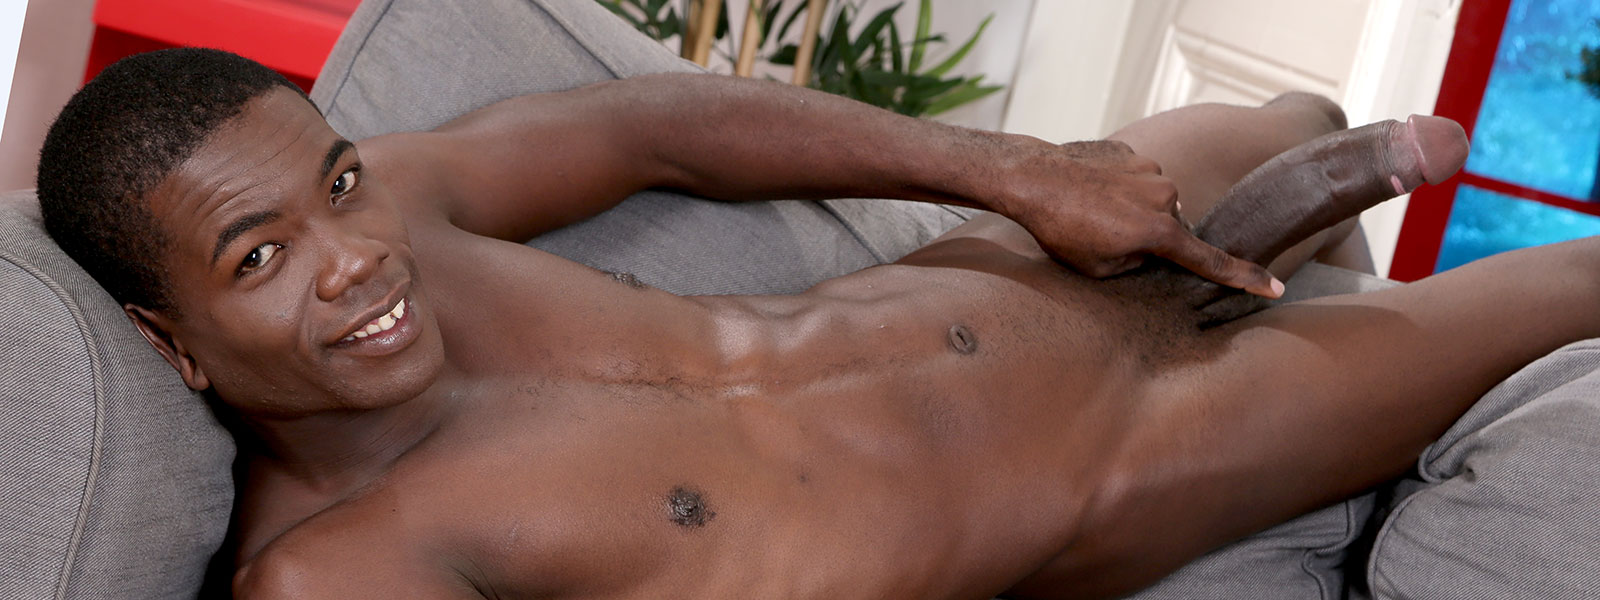 African man fucks twink gay sex stories and 5